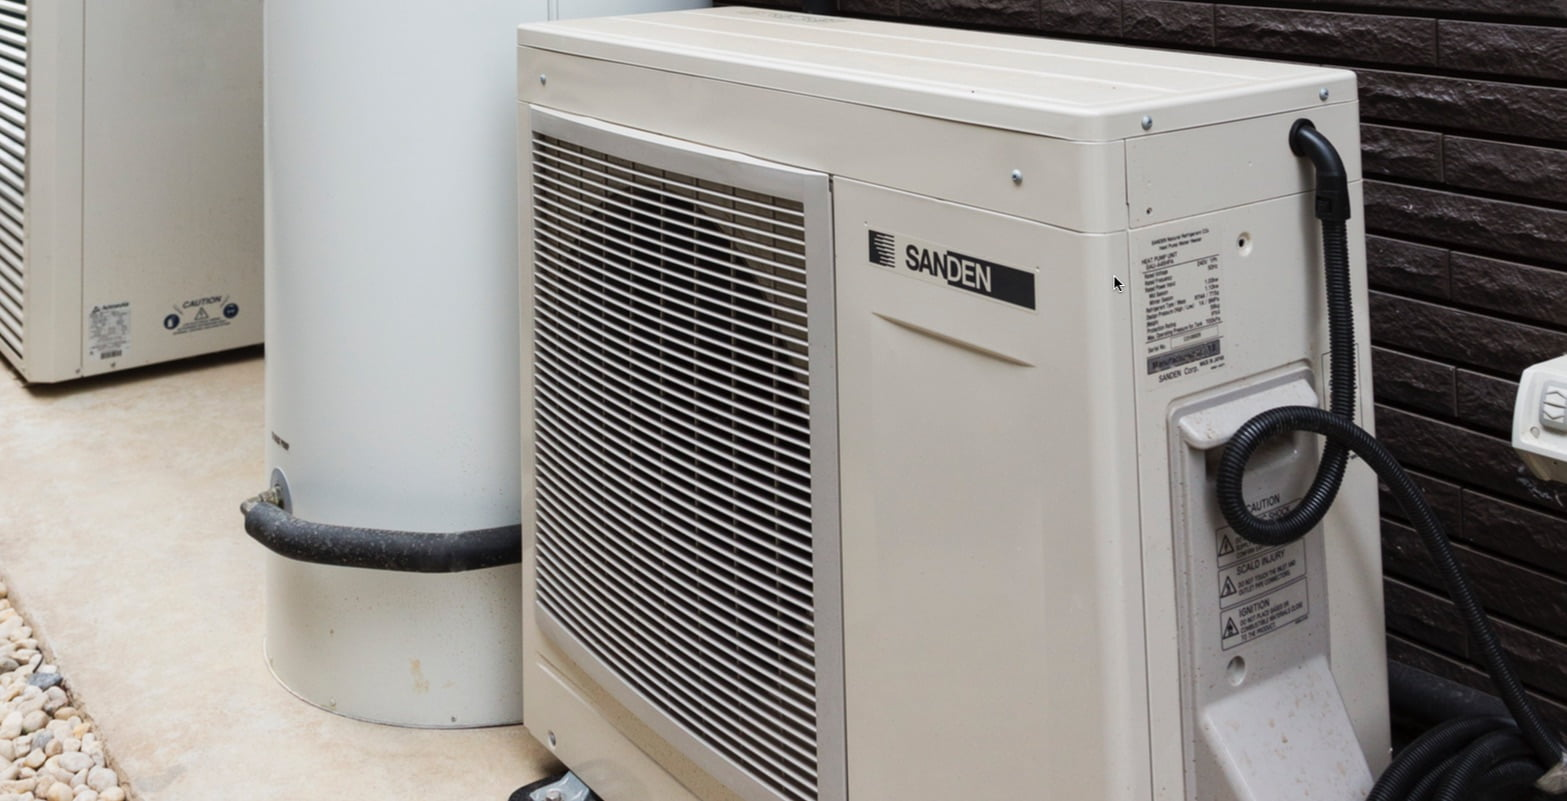 Co2 Takes Heat Pump Water Heaters To The Next Level Zero